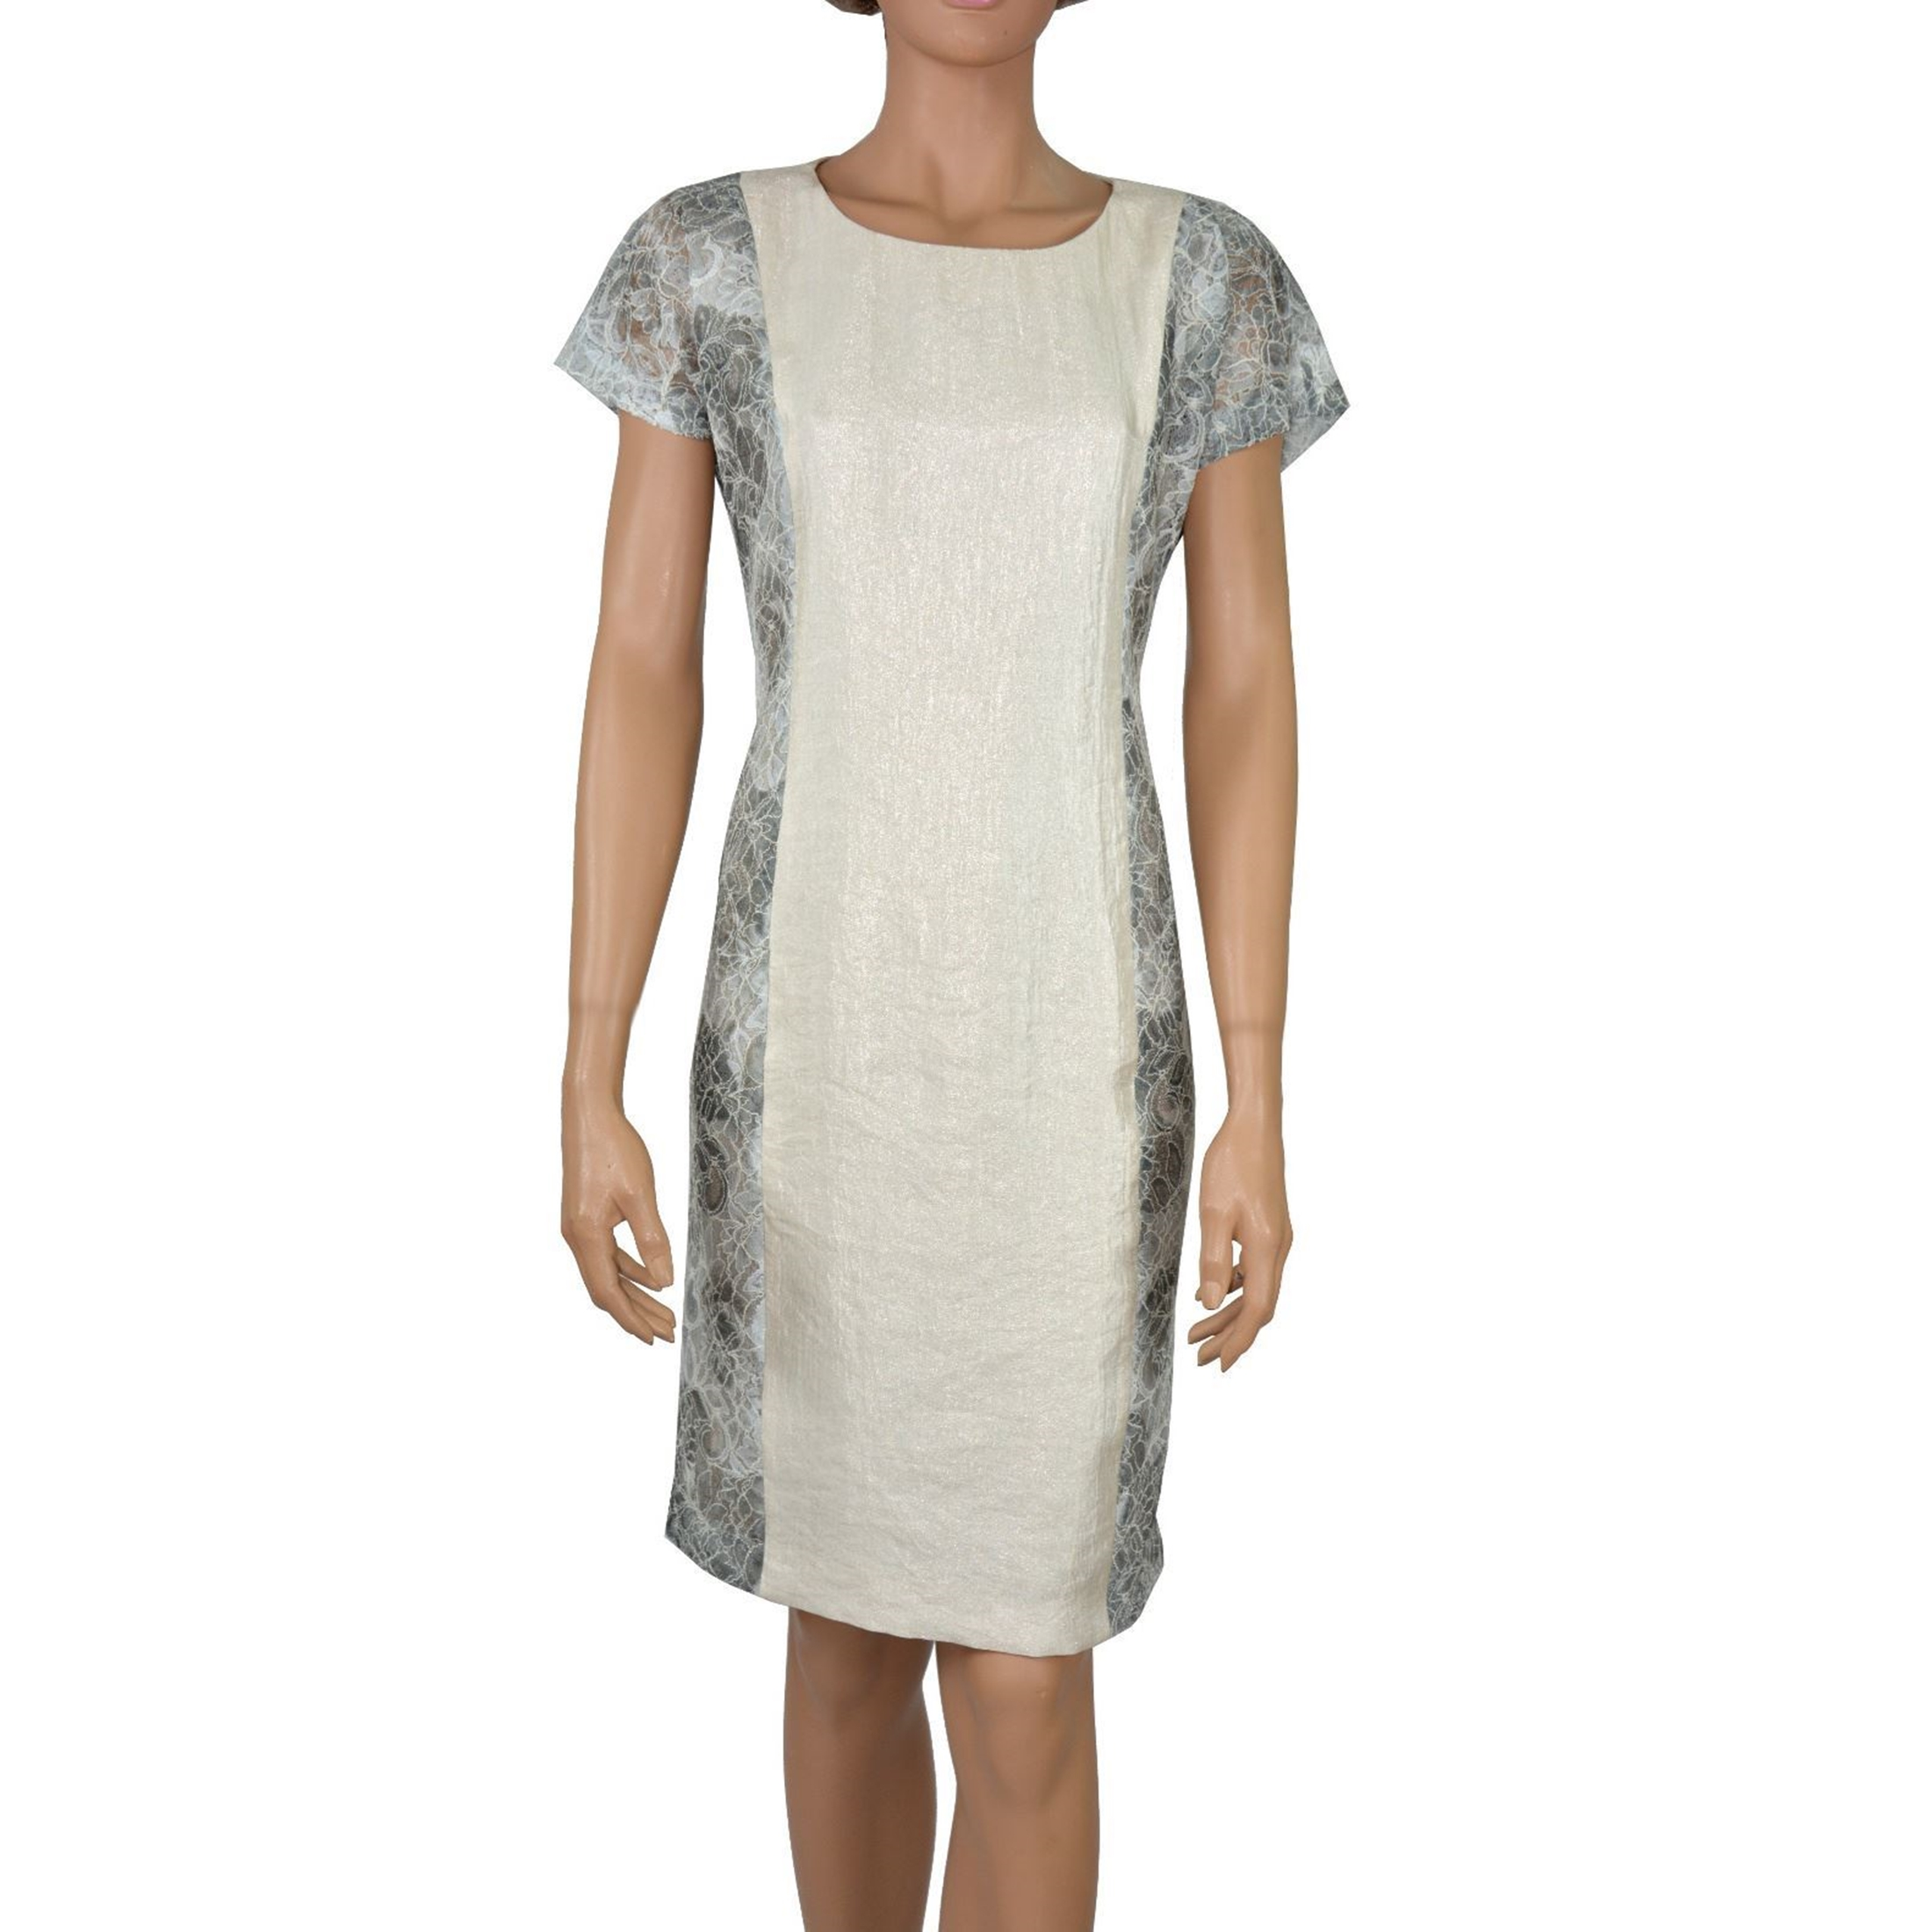 Picture of Women's Dress - LM451410